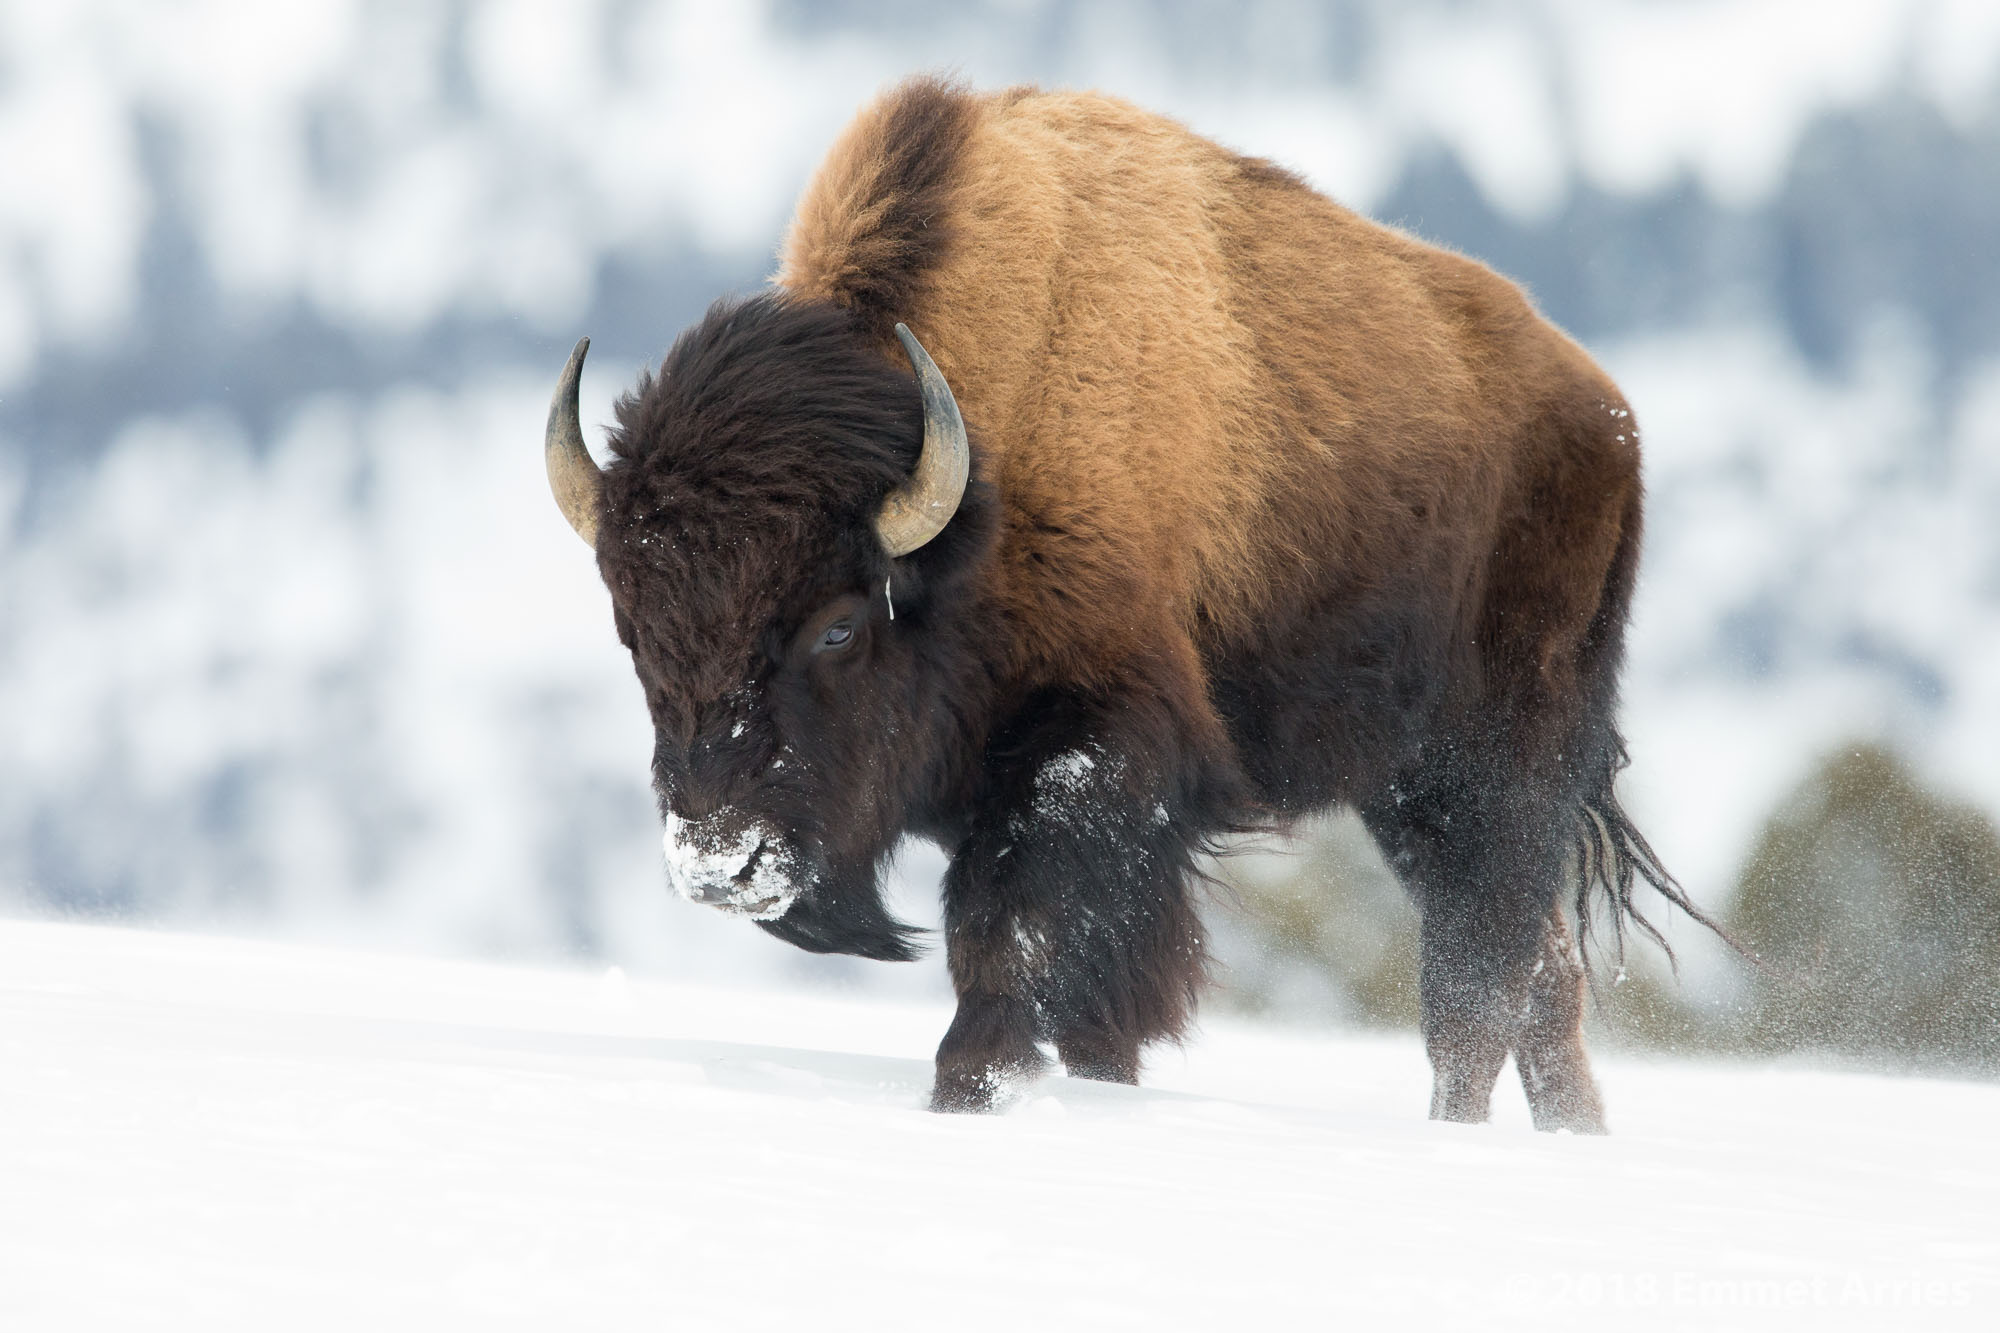 This bison struggles against the powerful wind as it leads a herd up a snowy hill on a wind-swept landscape in Yellowstone National Park. Yellowstone is the only place where Bison have lived since continuously lived since prehistoric times and considering that there were only 25 Bison in Yellowstone in 1901, we are incredibly lucky that Bison are still among us today.